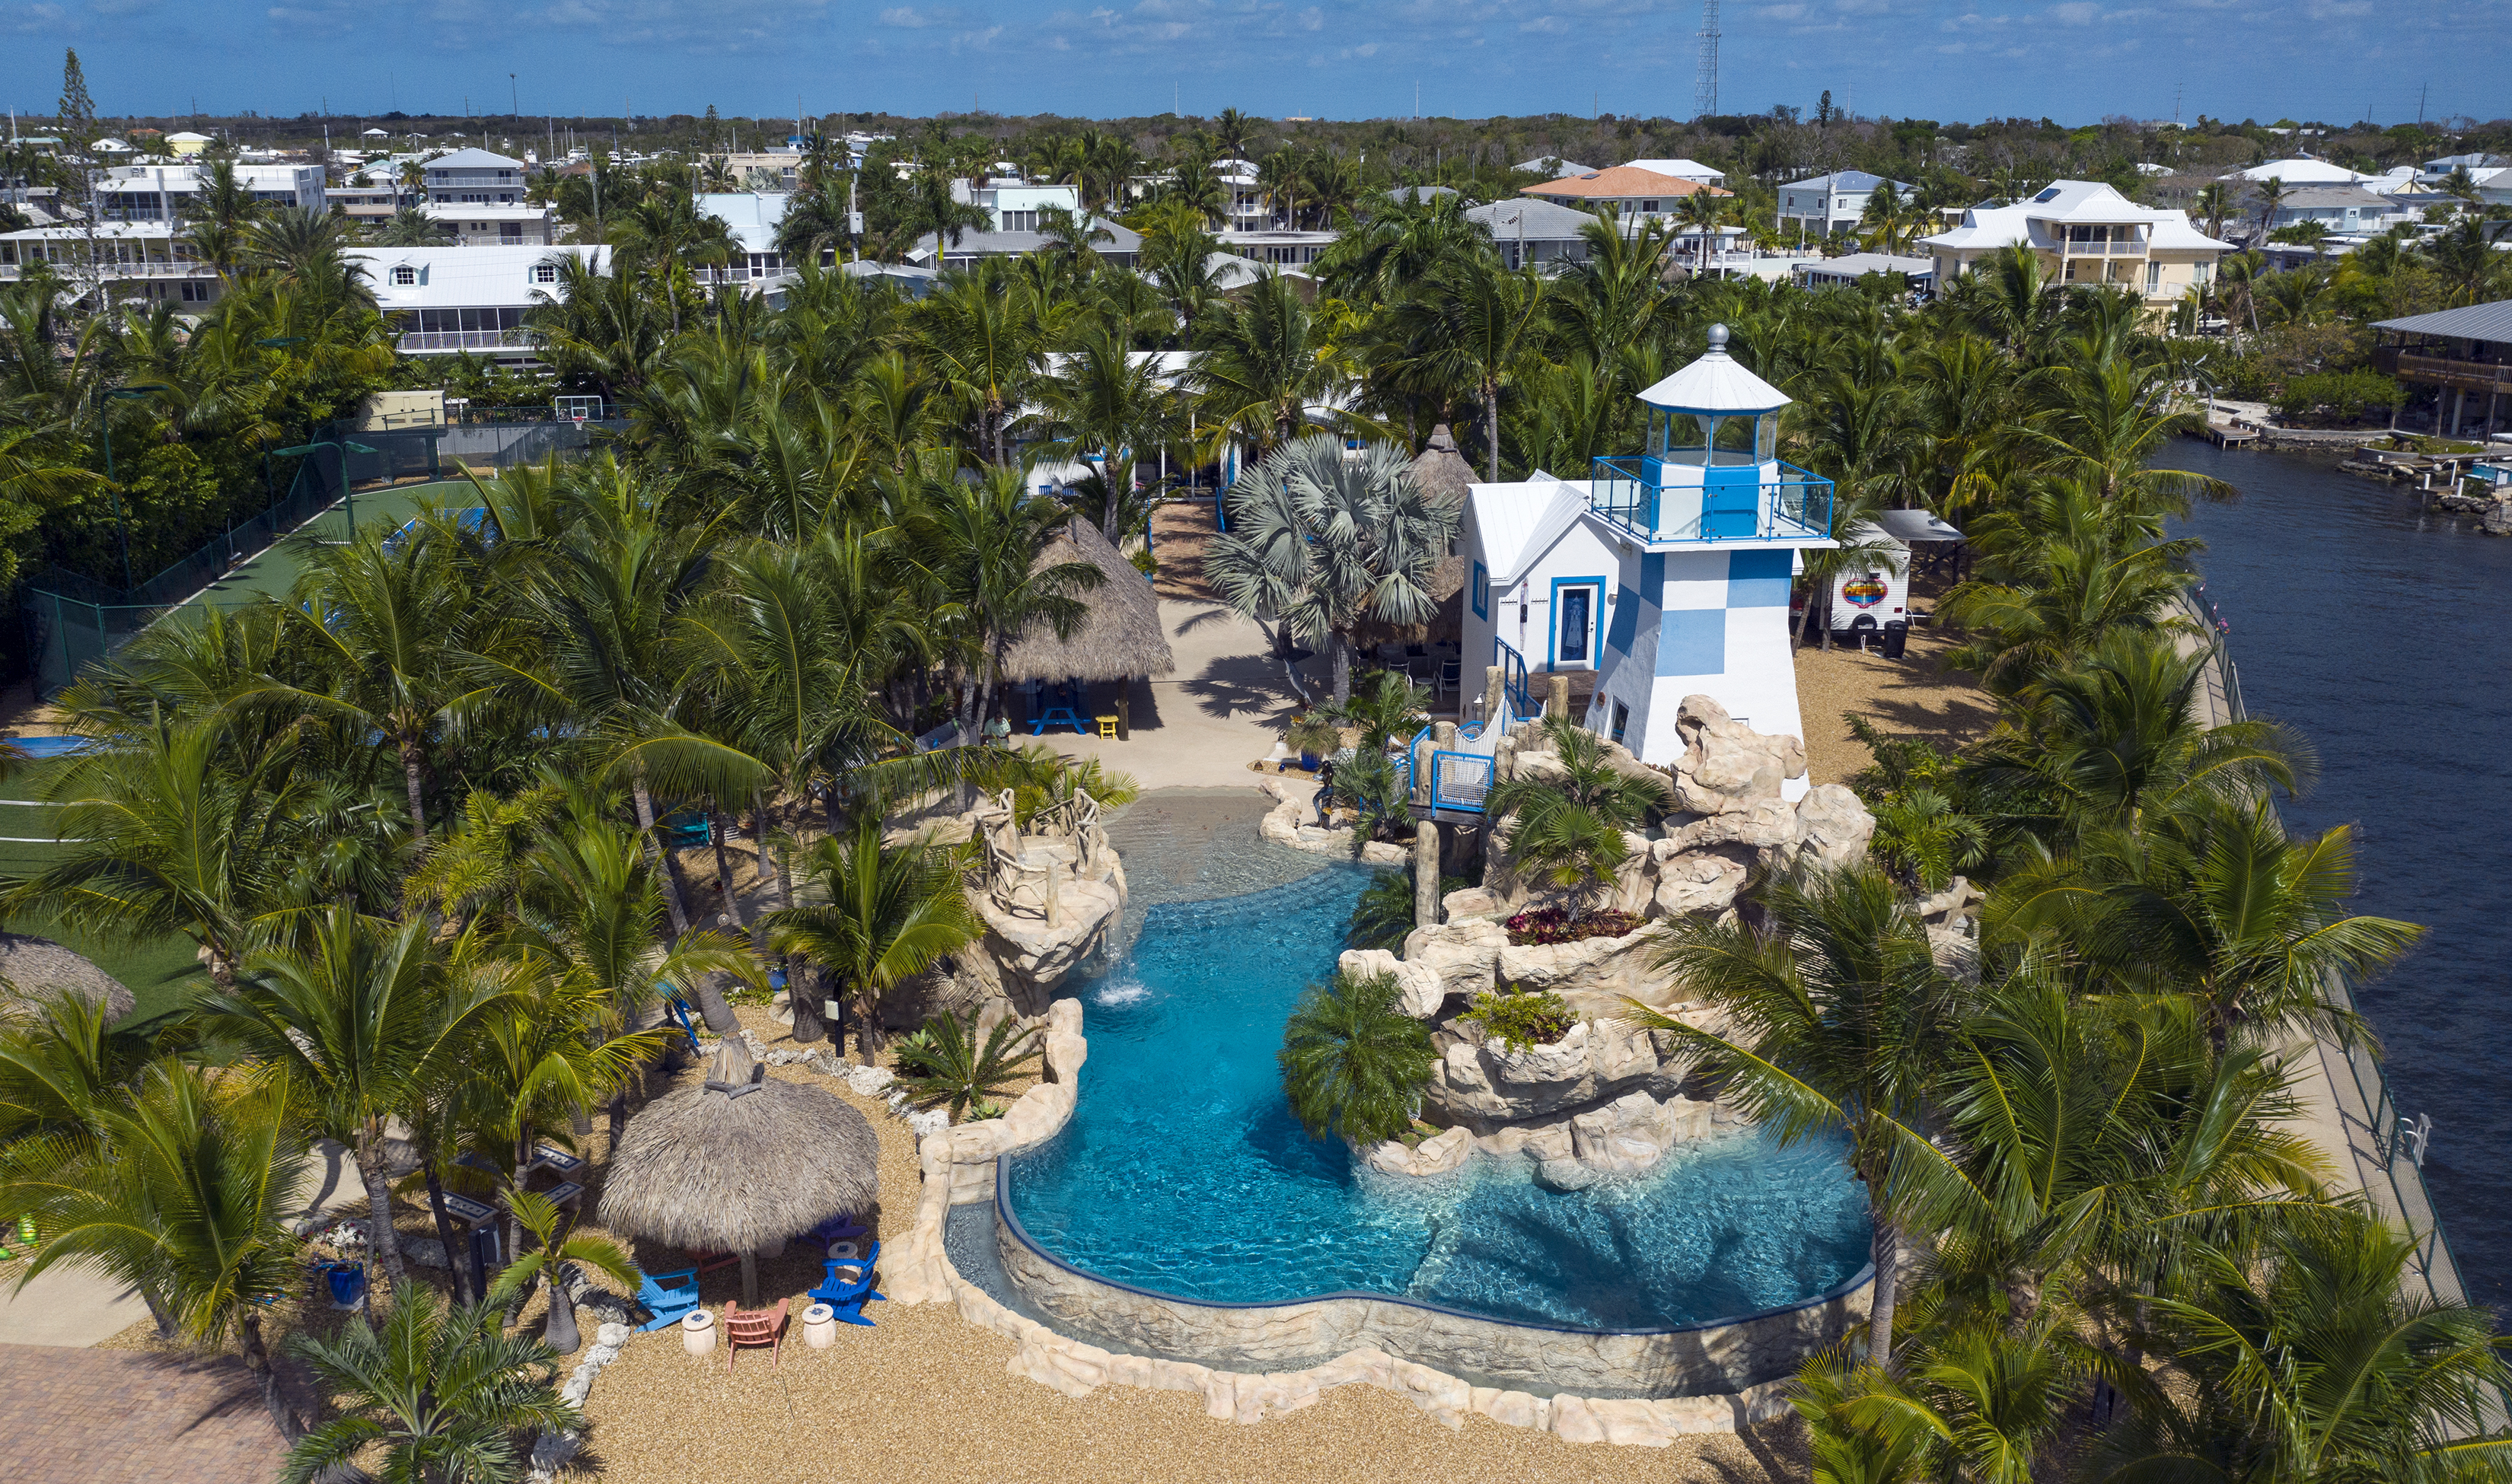 An aerial view of a resort-type pool, with palm trees and a blue and white lighthouse surrounding the water.